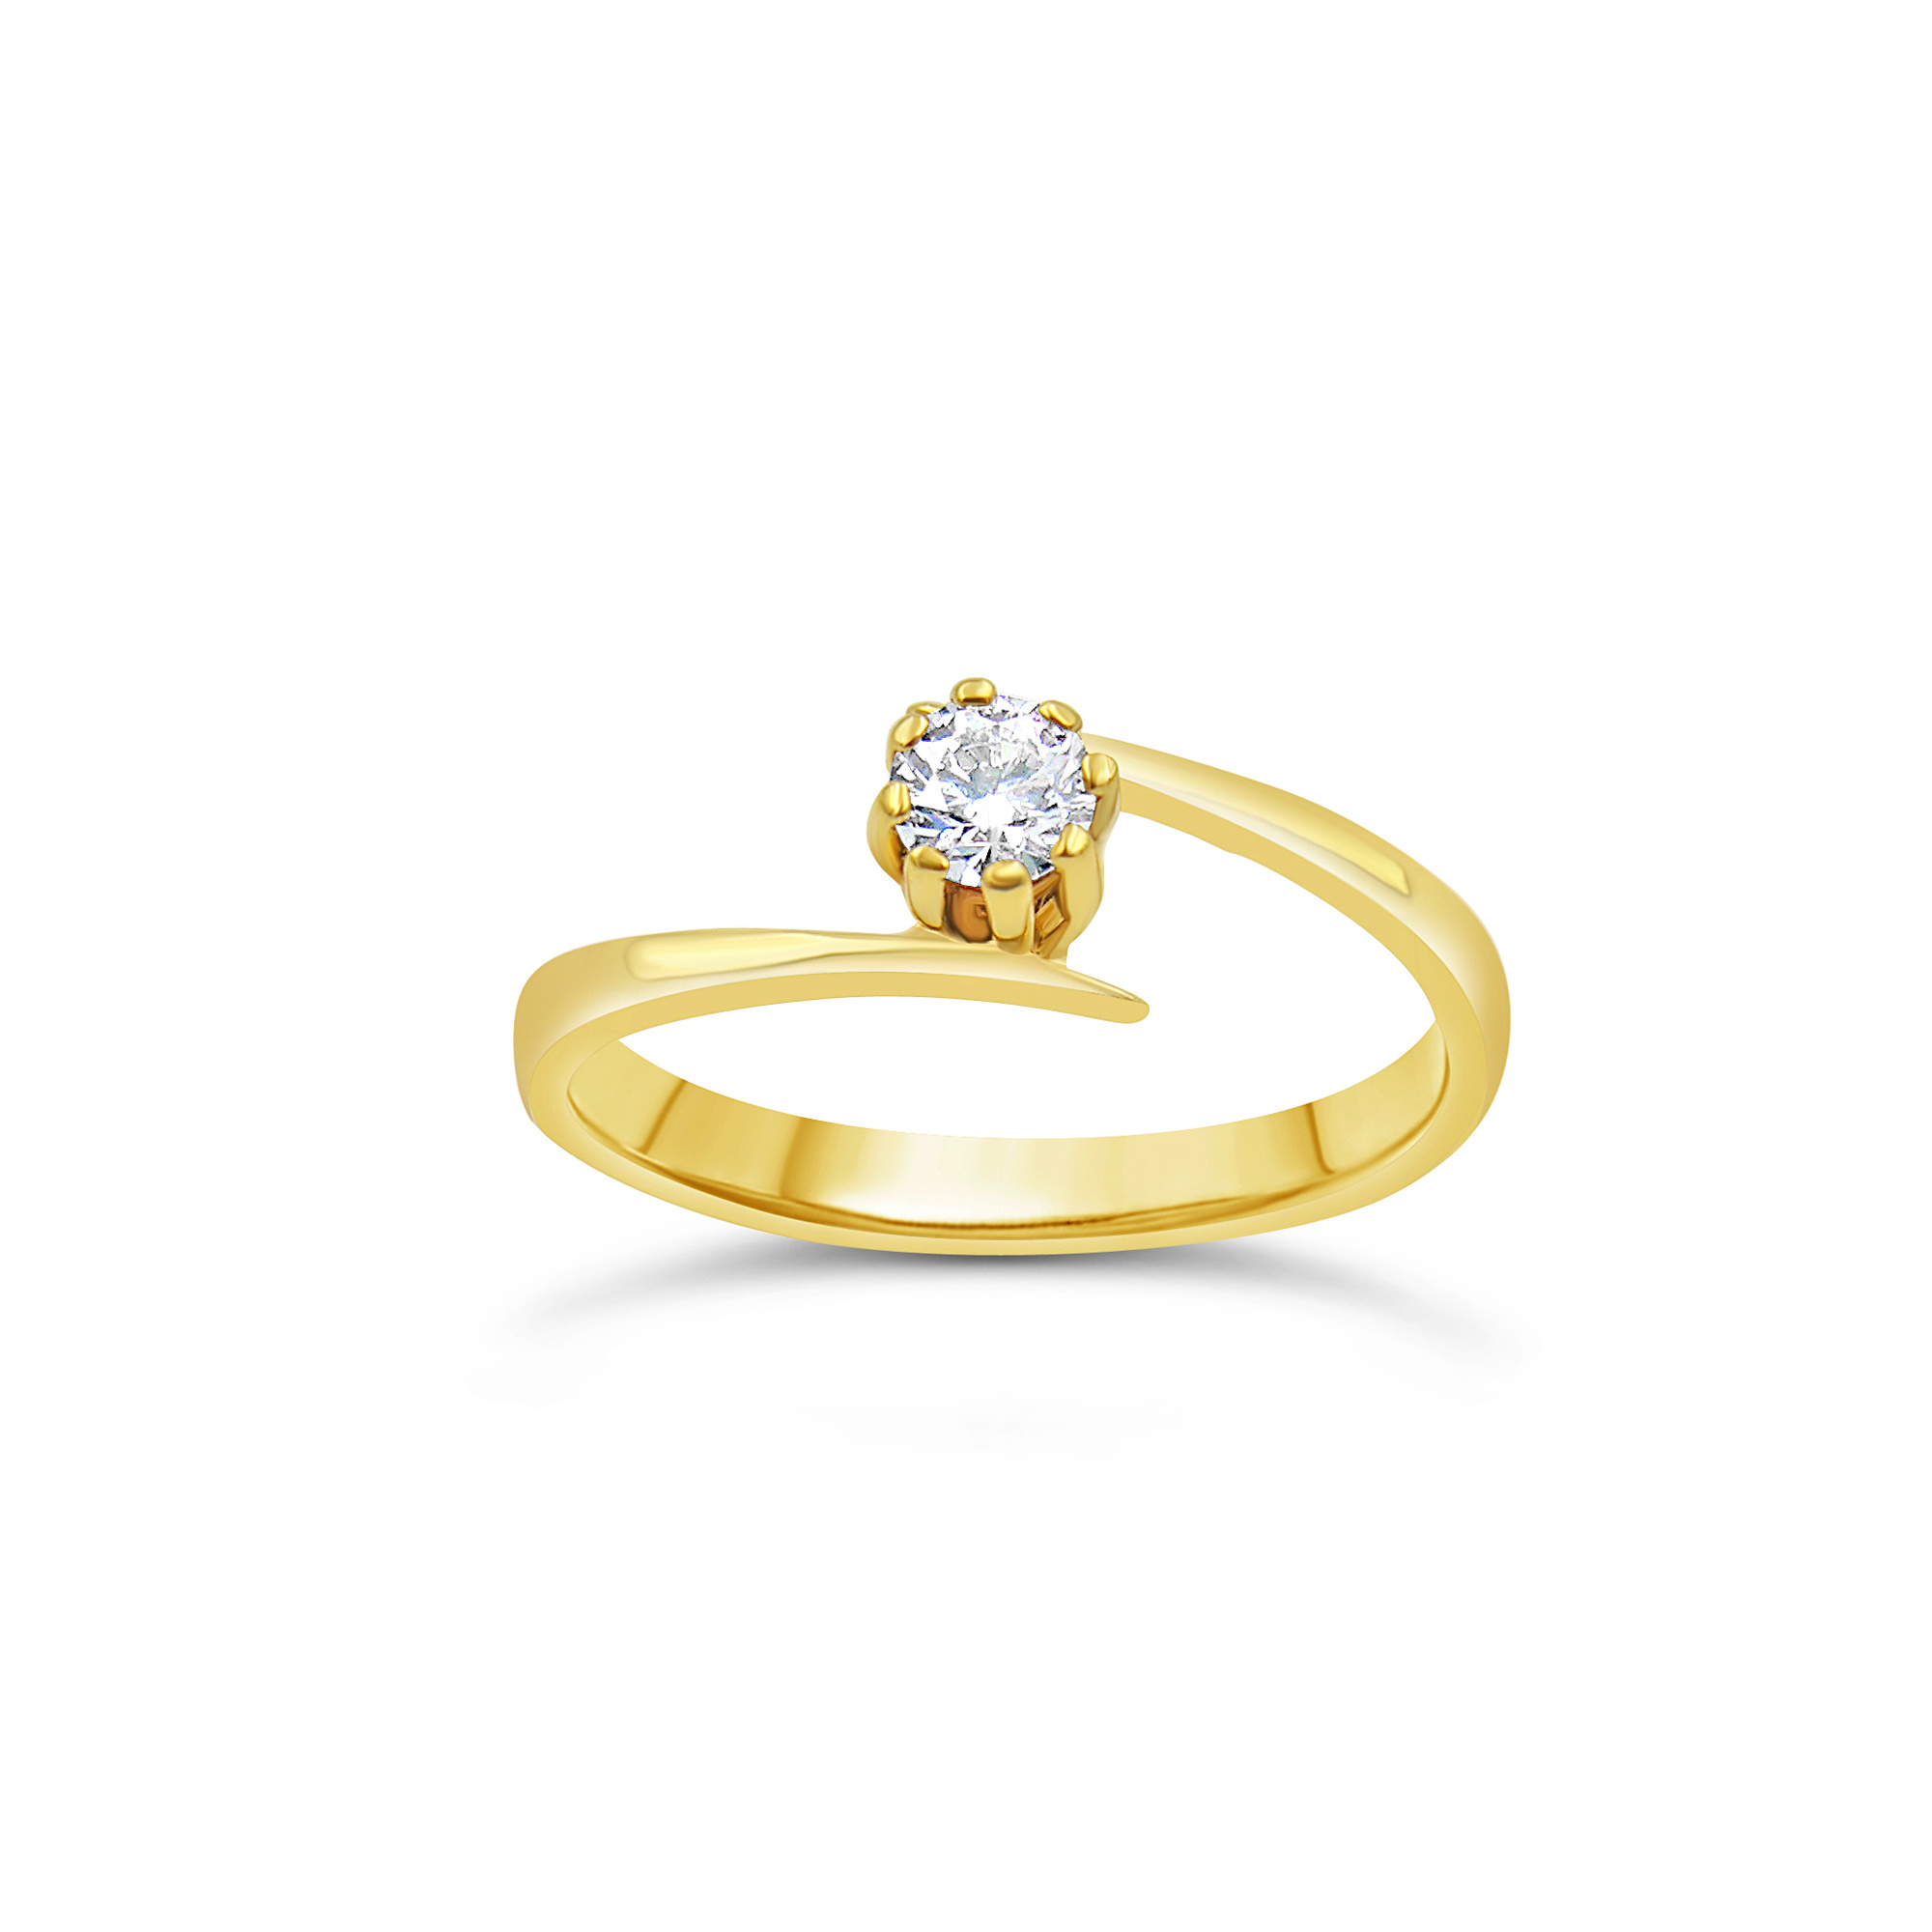 18kt yellow gold engagement ring with 0.24 ct diamond